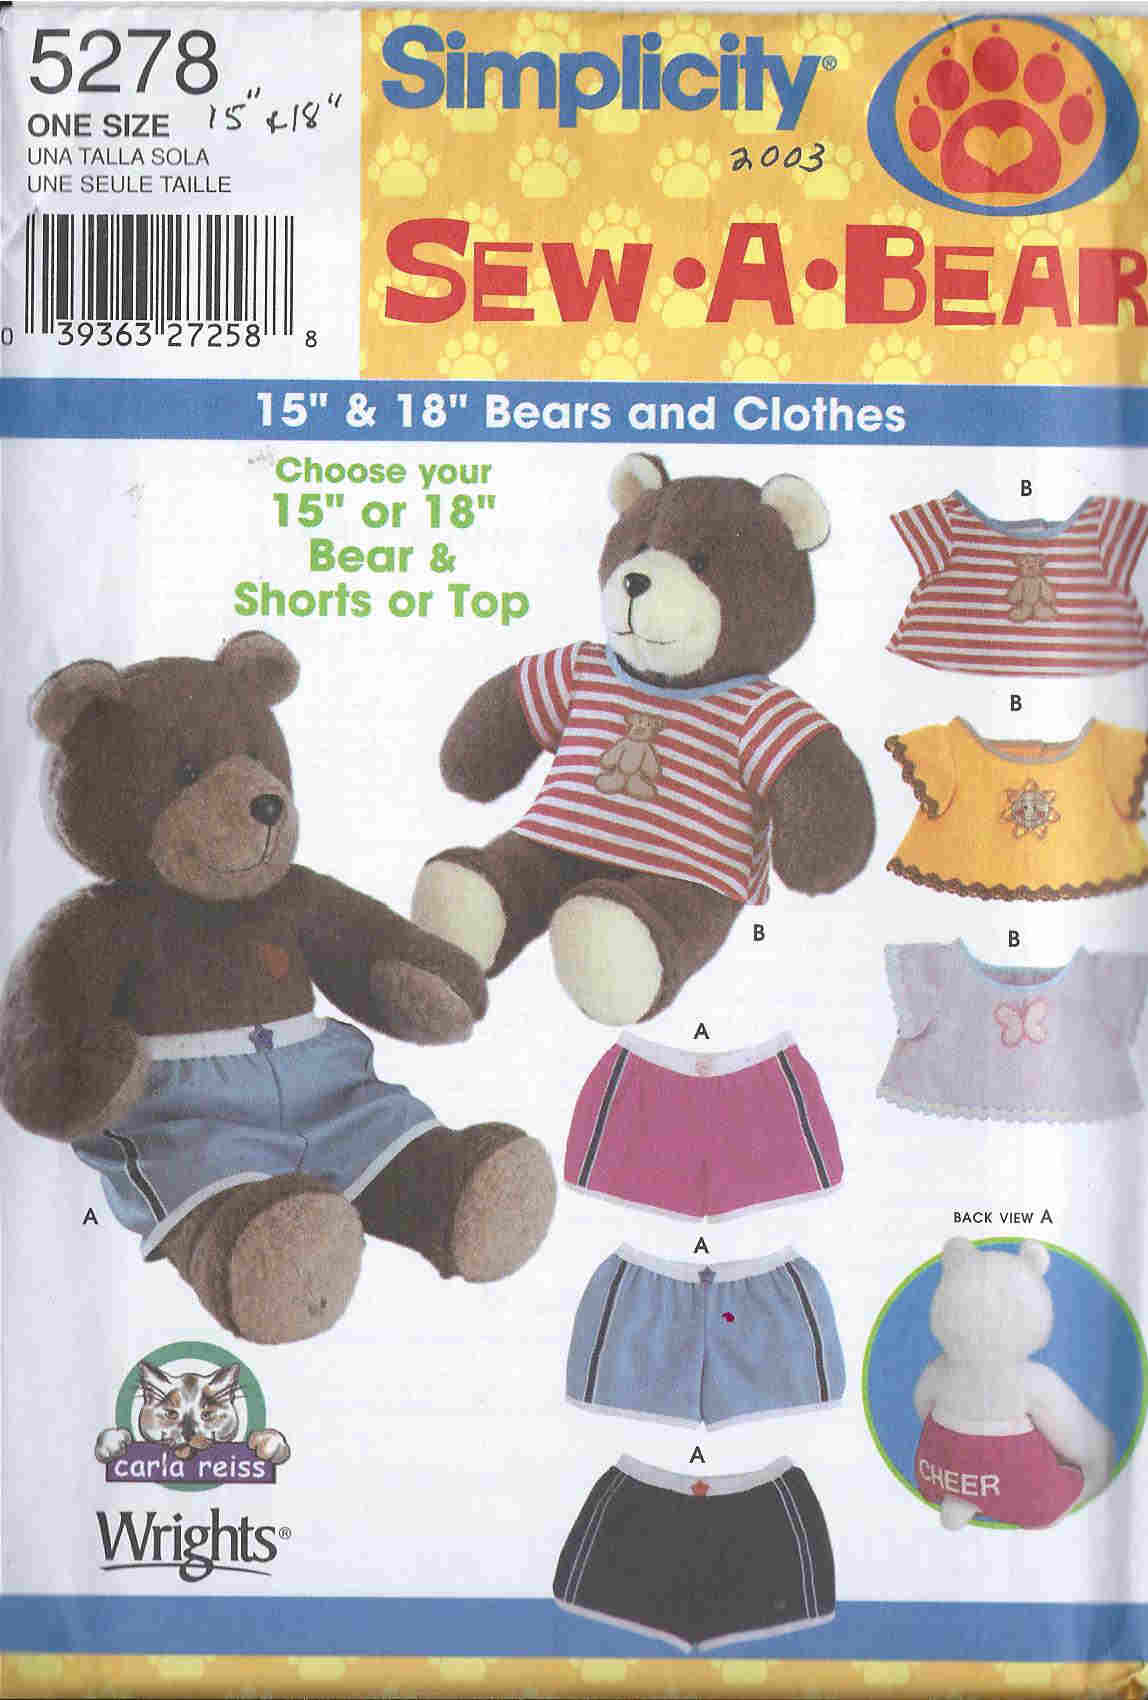 sew-a-bear clothing sewing pattern